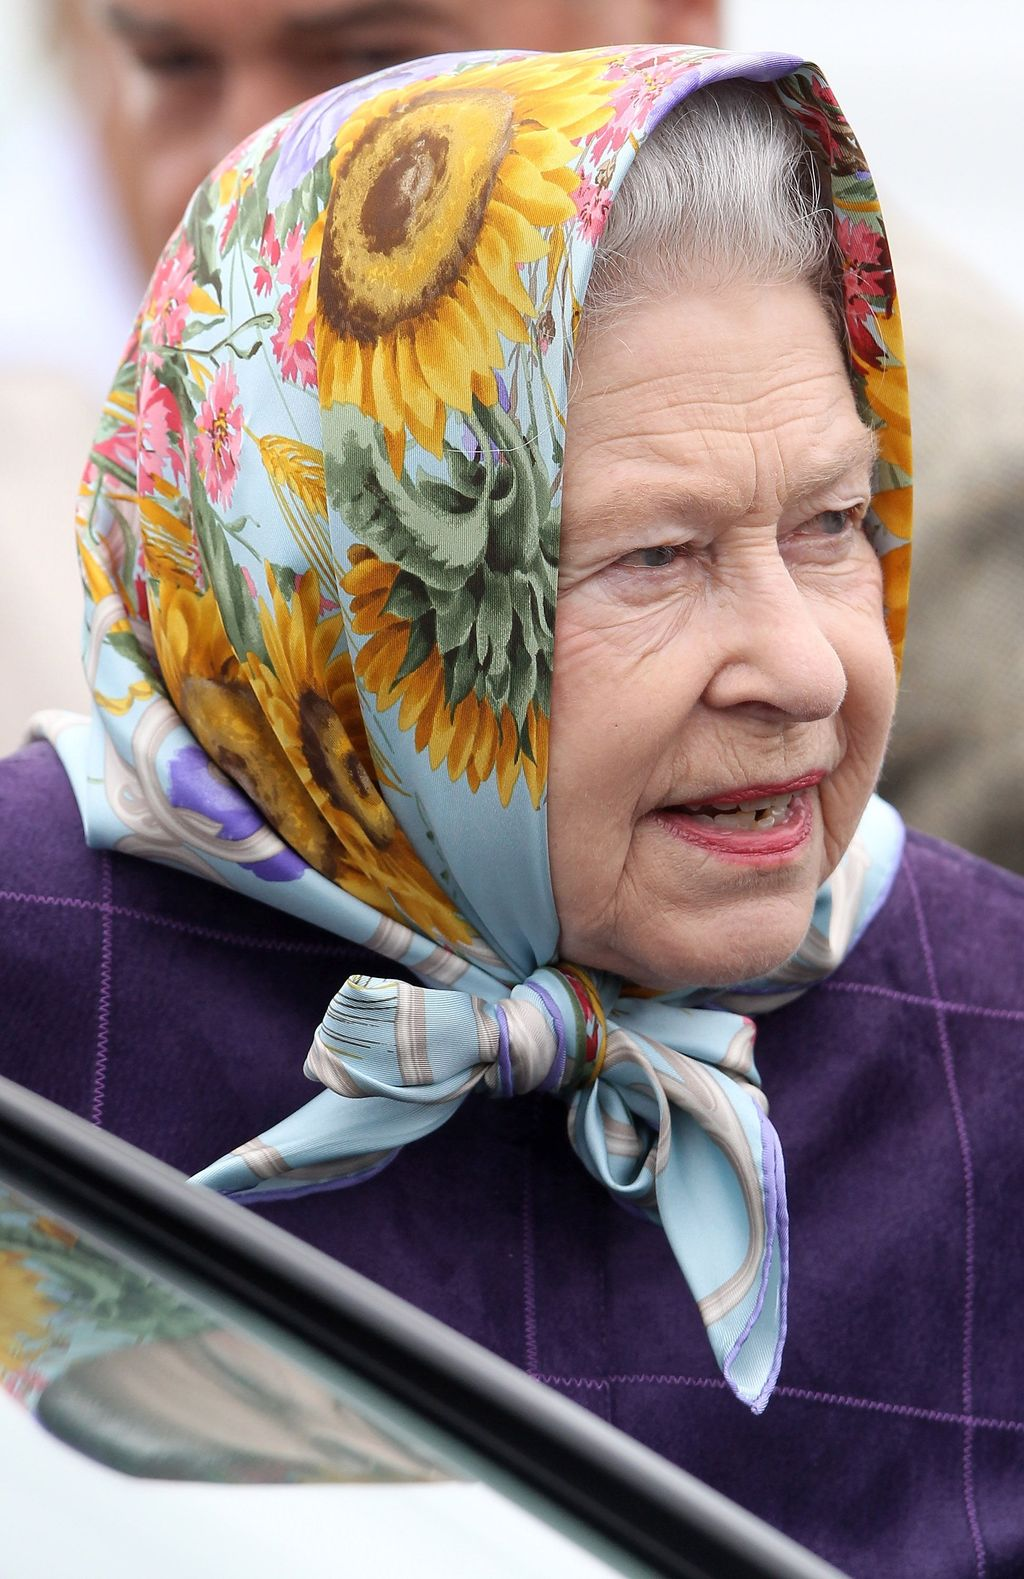 SANDRINGHAM, ENGLAND - FEBRUARY 3:  Queen Elizabeth II arrives for a Tree Planting ceremony in the Diamond Jubilee Wood on the Sandringham estate to mark her Diamond jubilee on February 3, 2012 in Sandringham, England. Queen Elizabeth II came to the throne on February 6, 1952 after the death of her father, King George VI. Her coronation took place on June 2, 1953. (Photo by Arthur Edwards/WPA -Pool/Getty Images)